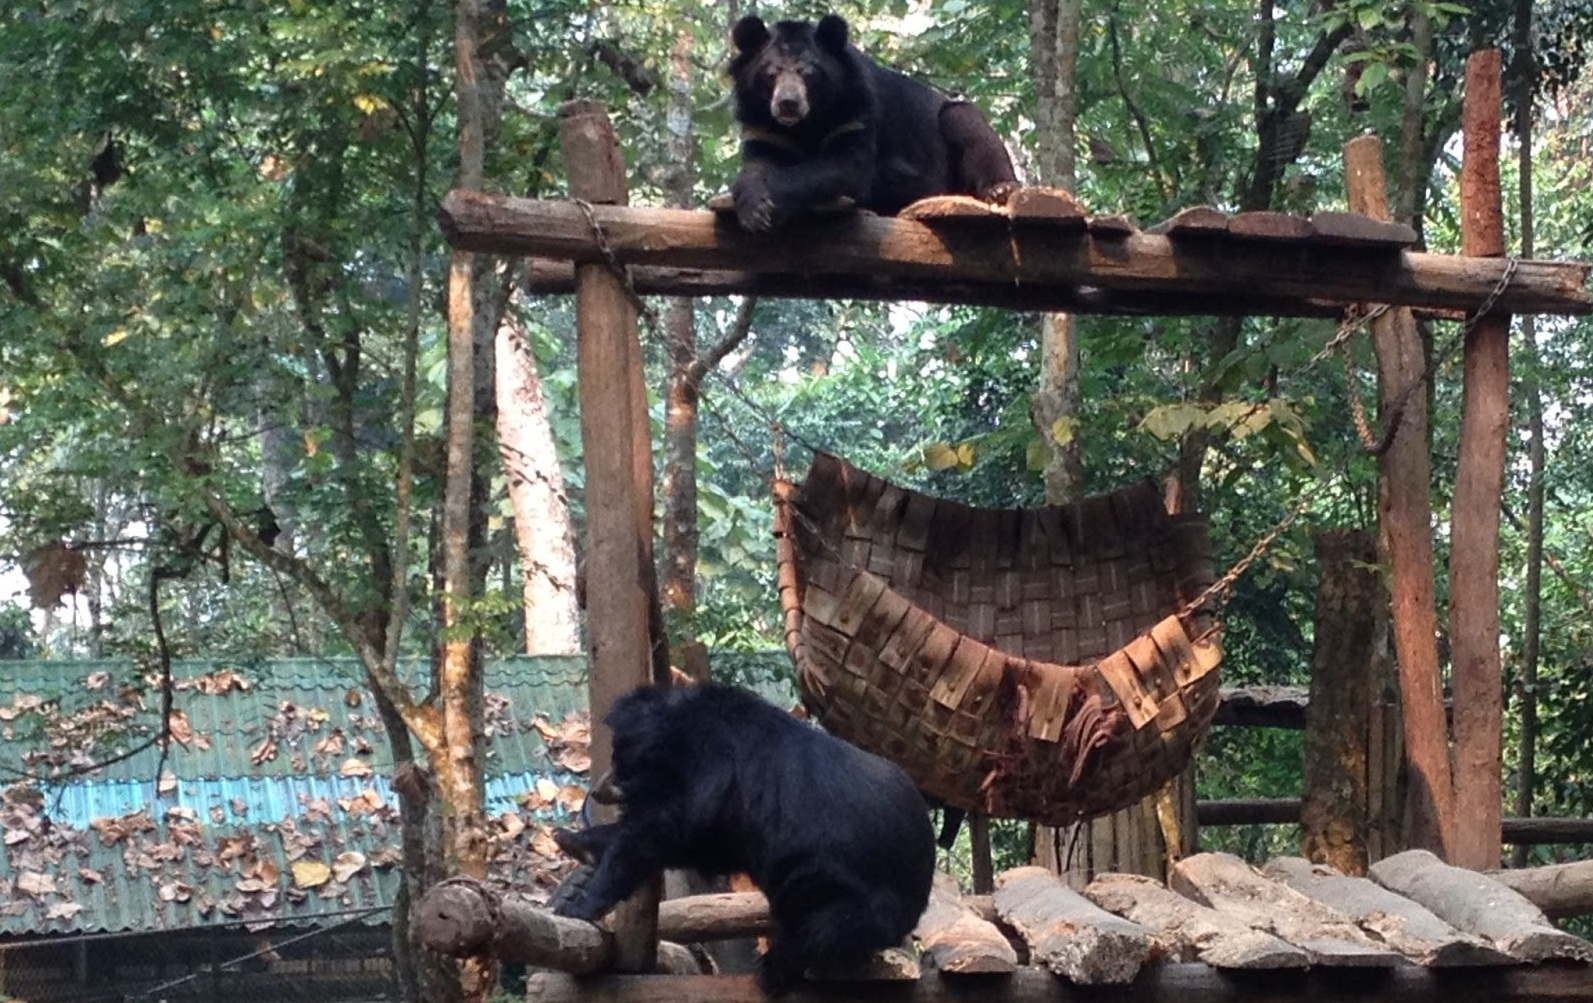 An Asiatic Black Bear in the Tat Kuang Si Rescue Centre